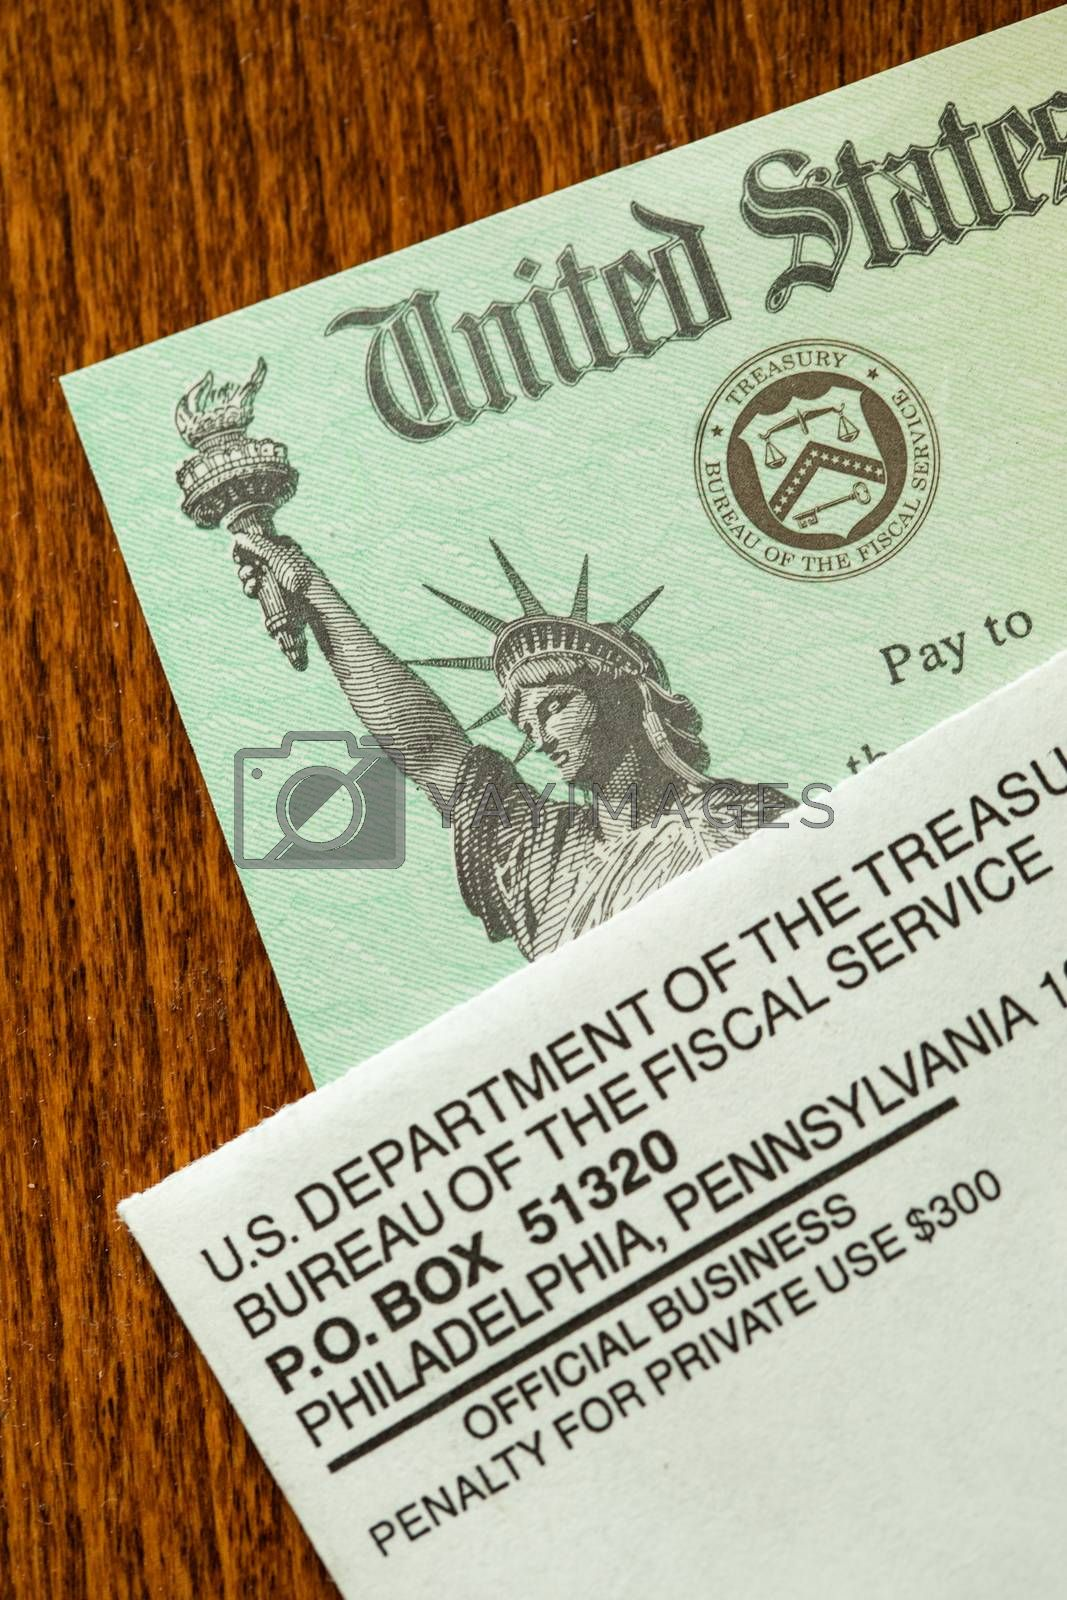 United States Internal Revenue Service, IRS, Check and Corner of Envelope.